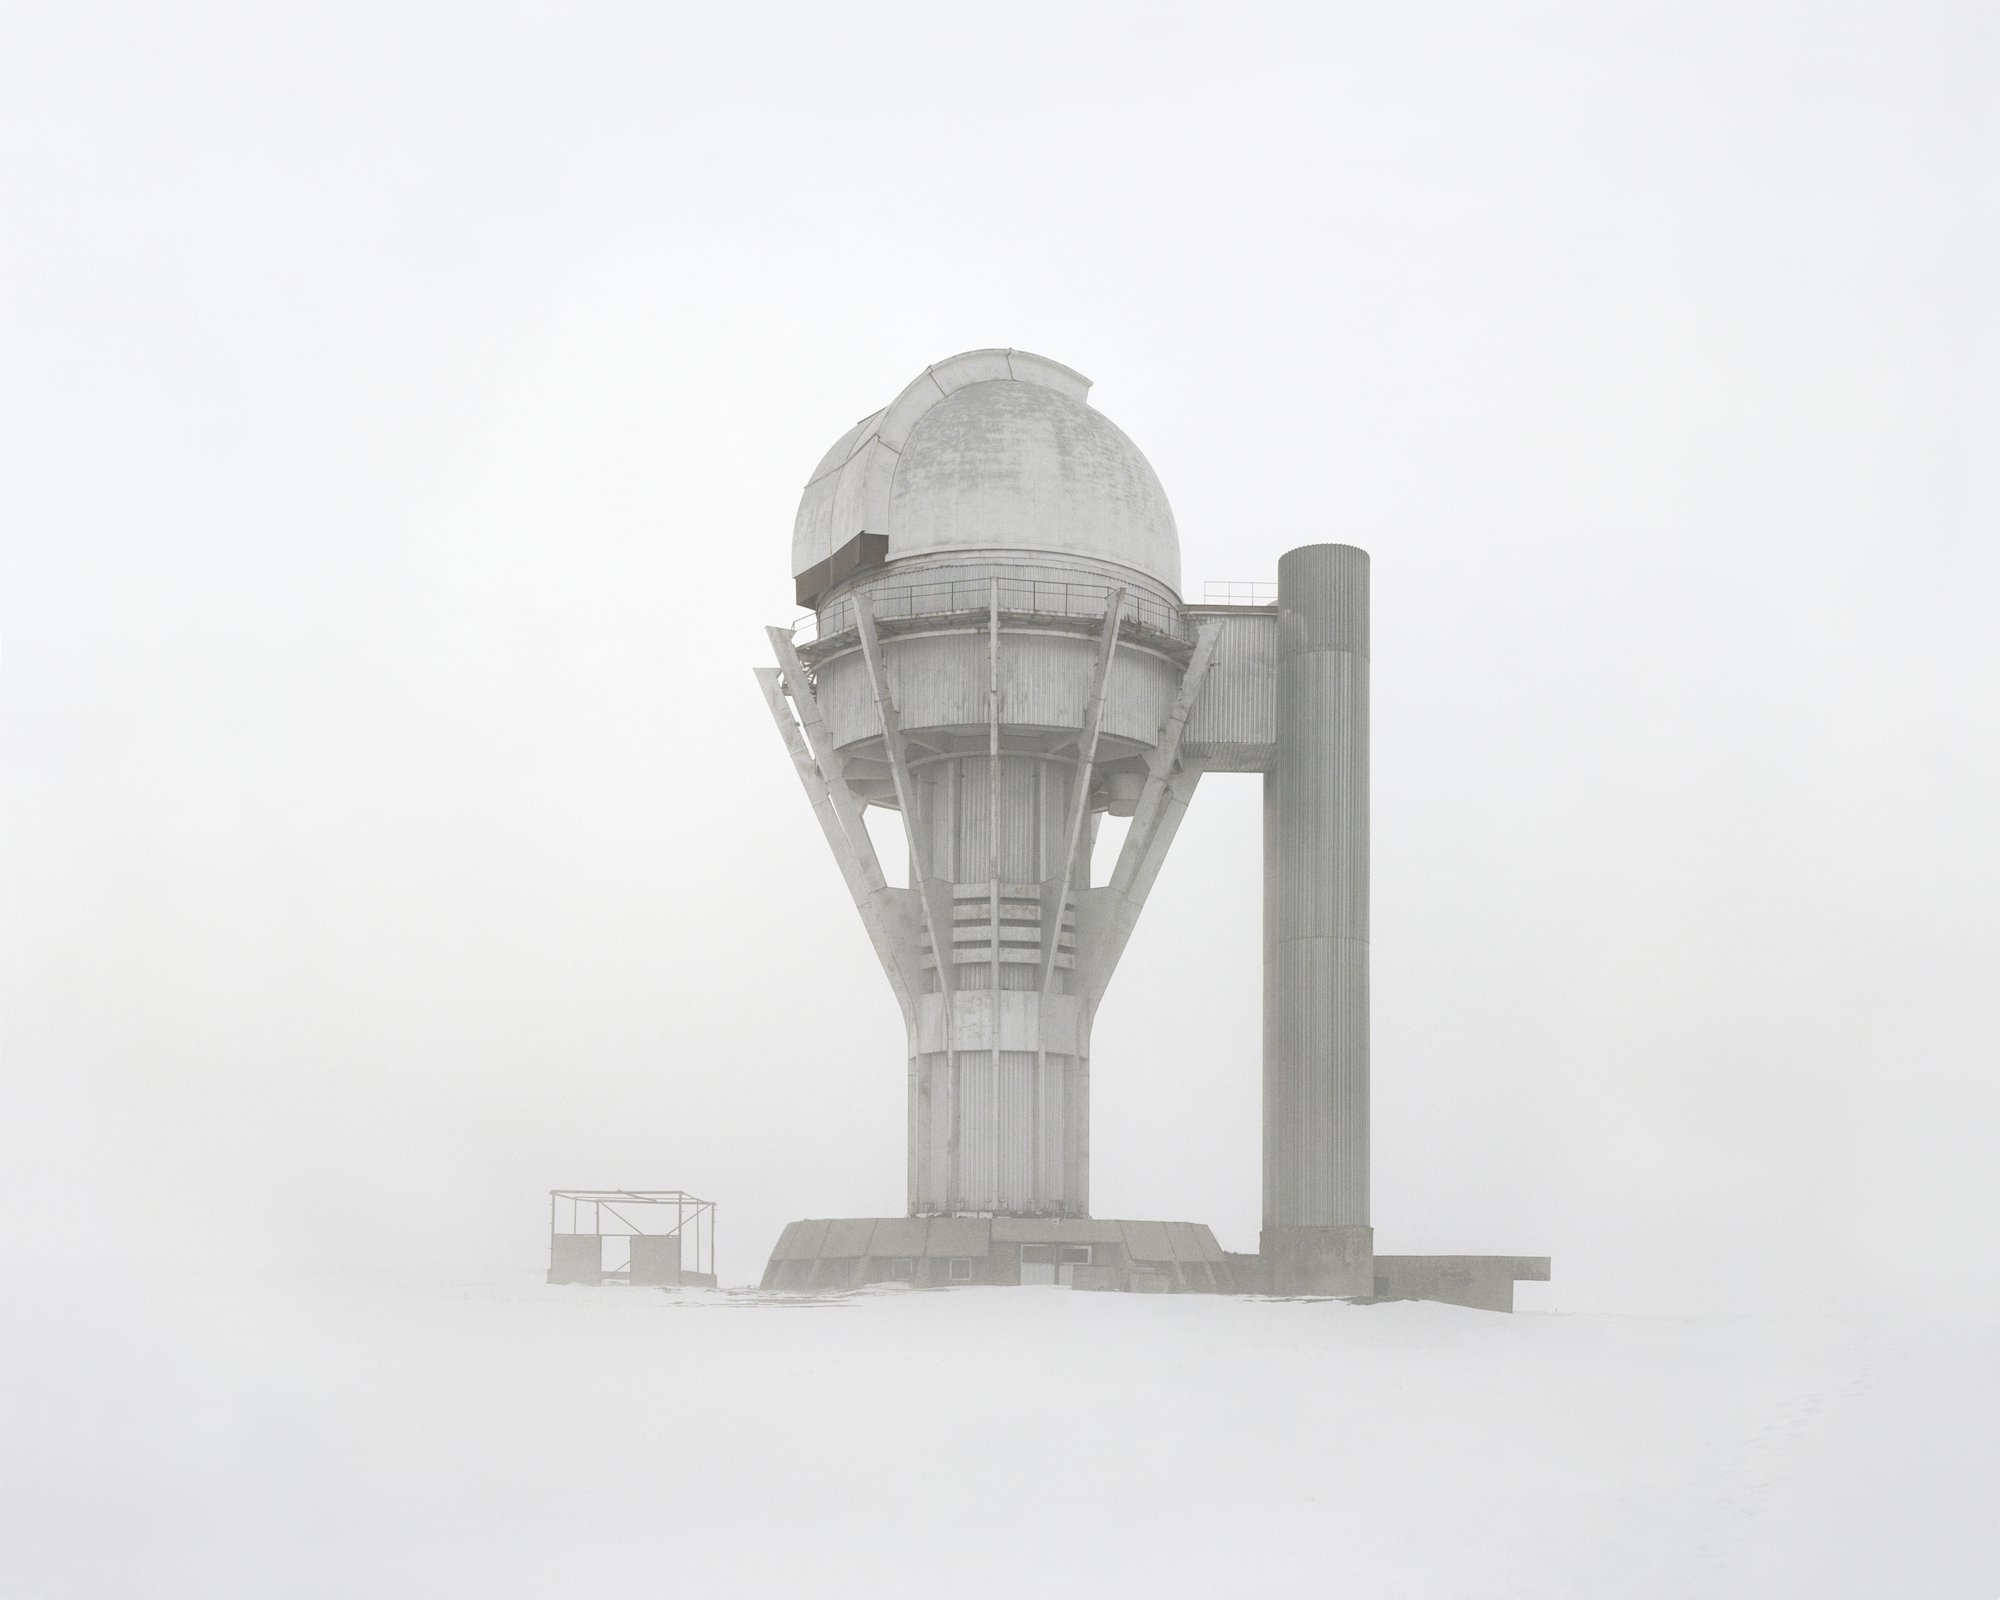 Restricted Areas - Deserted observatory